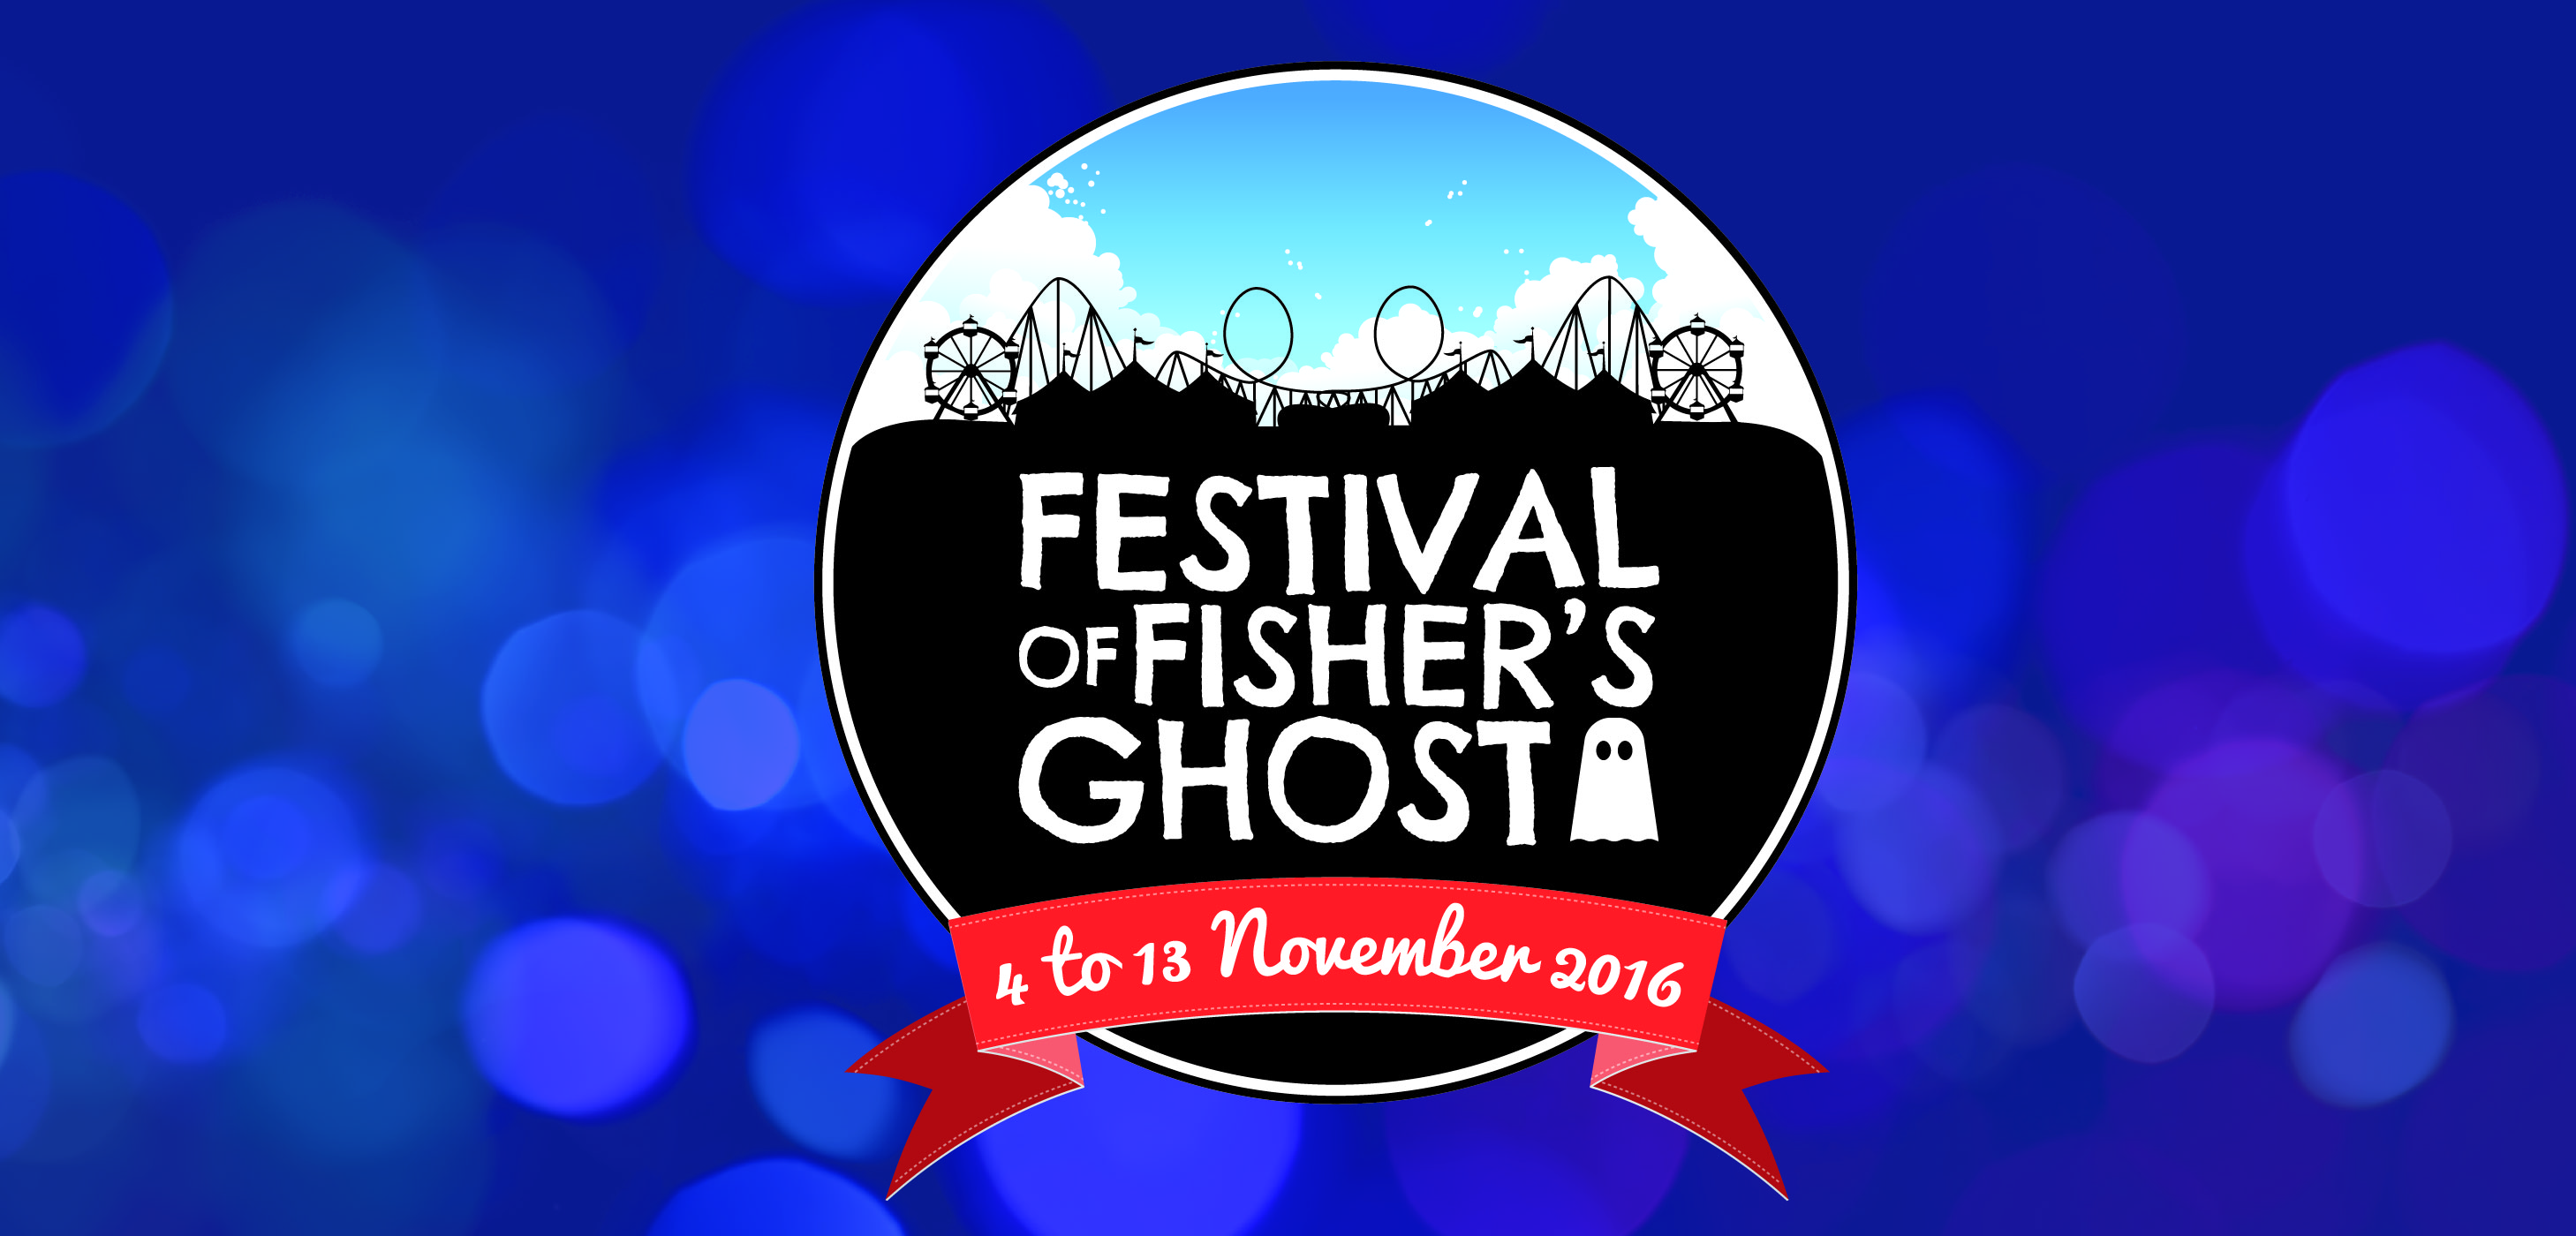 Fisher's Ghost 2016 logo with background